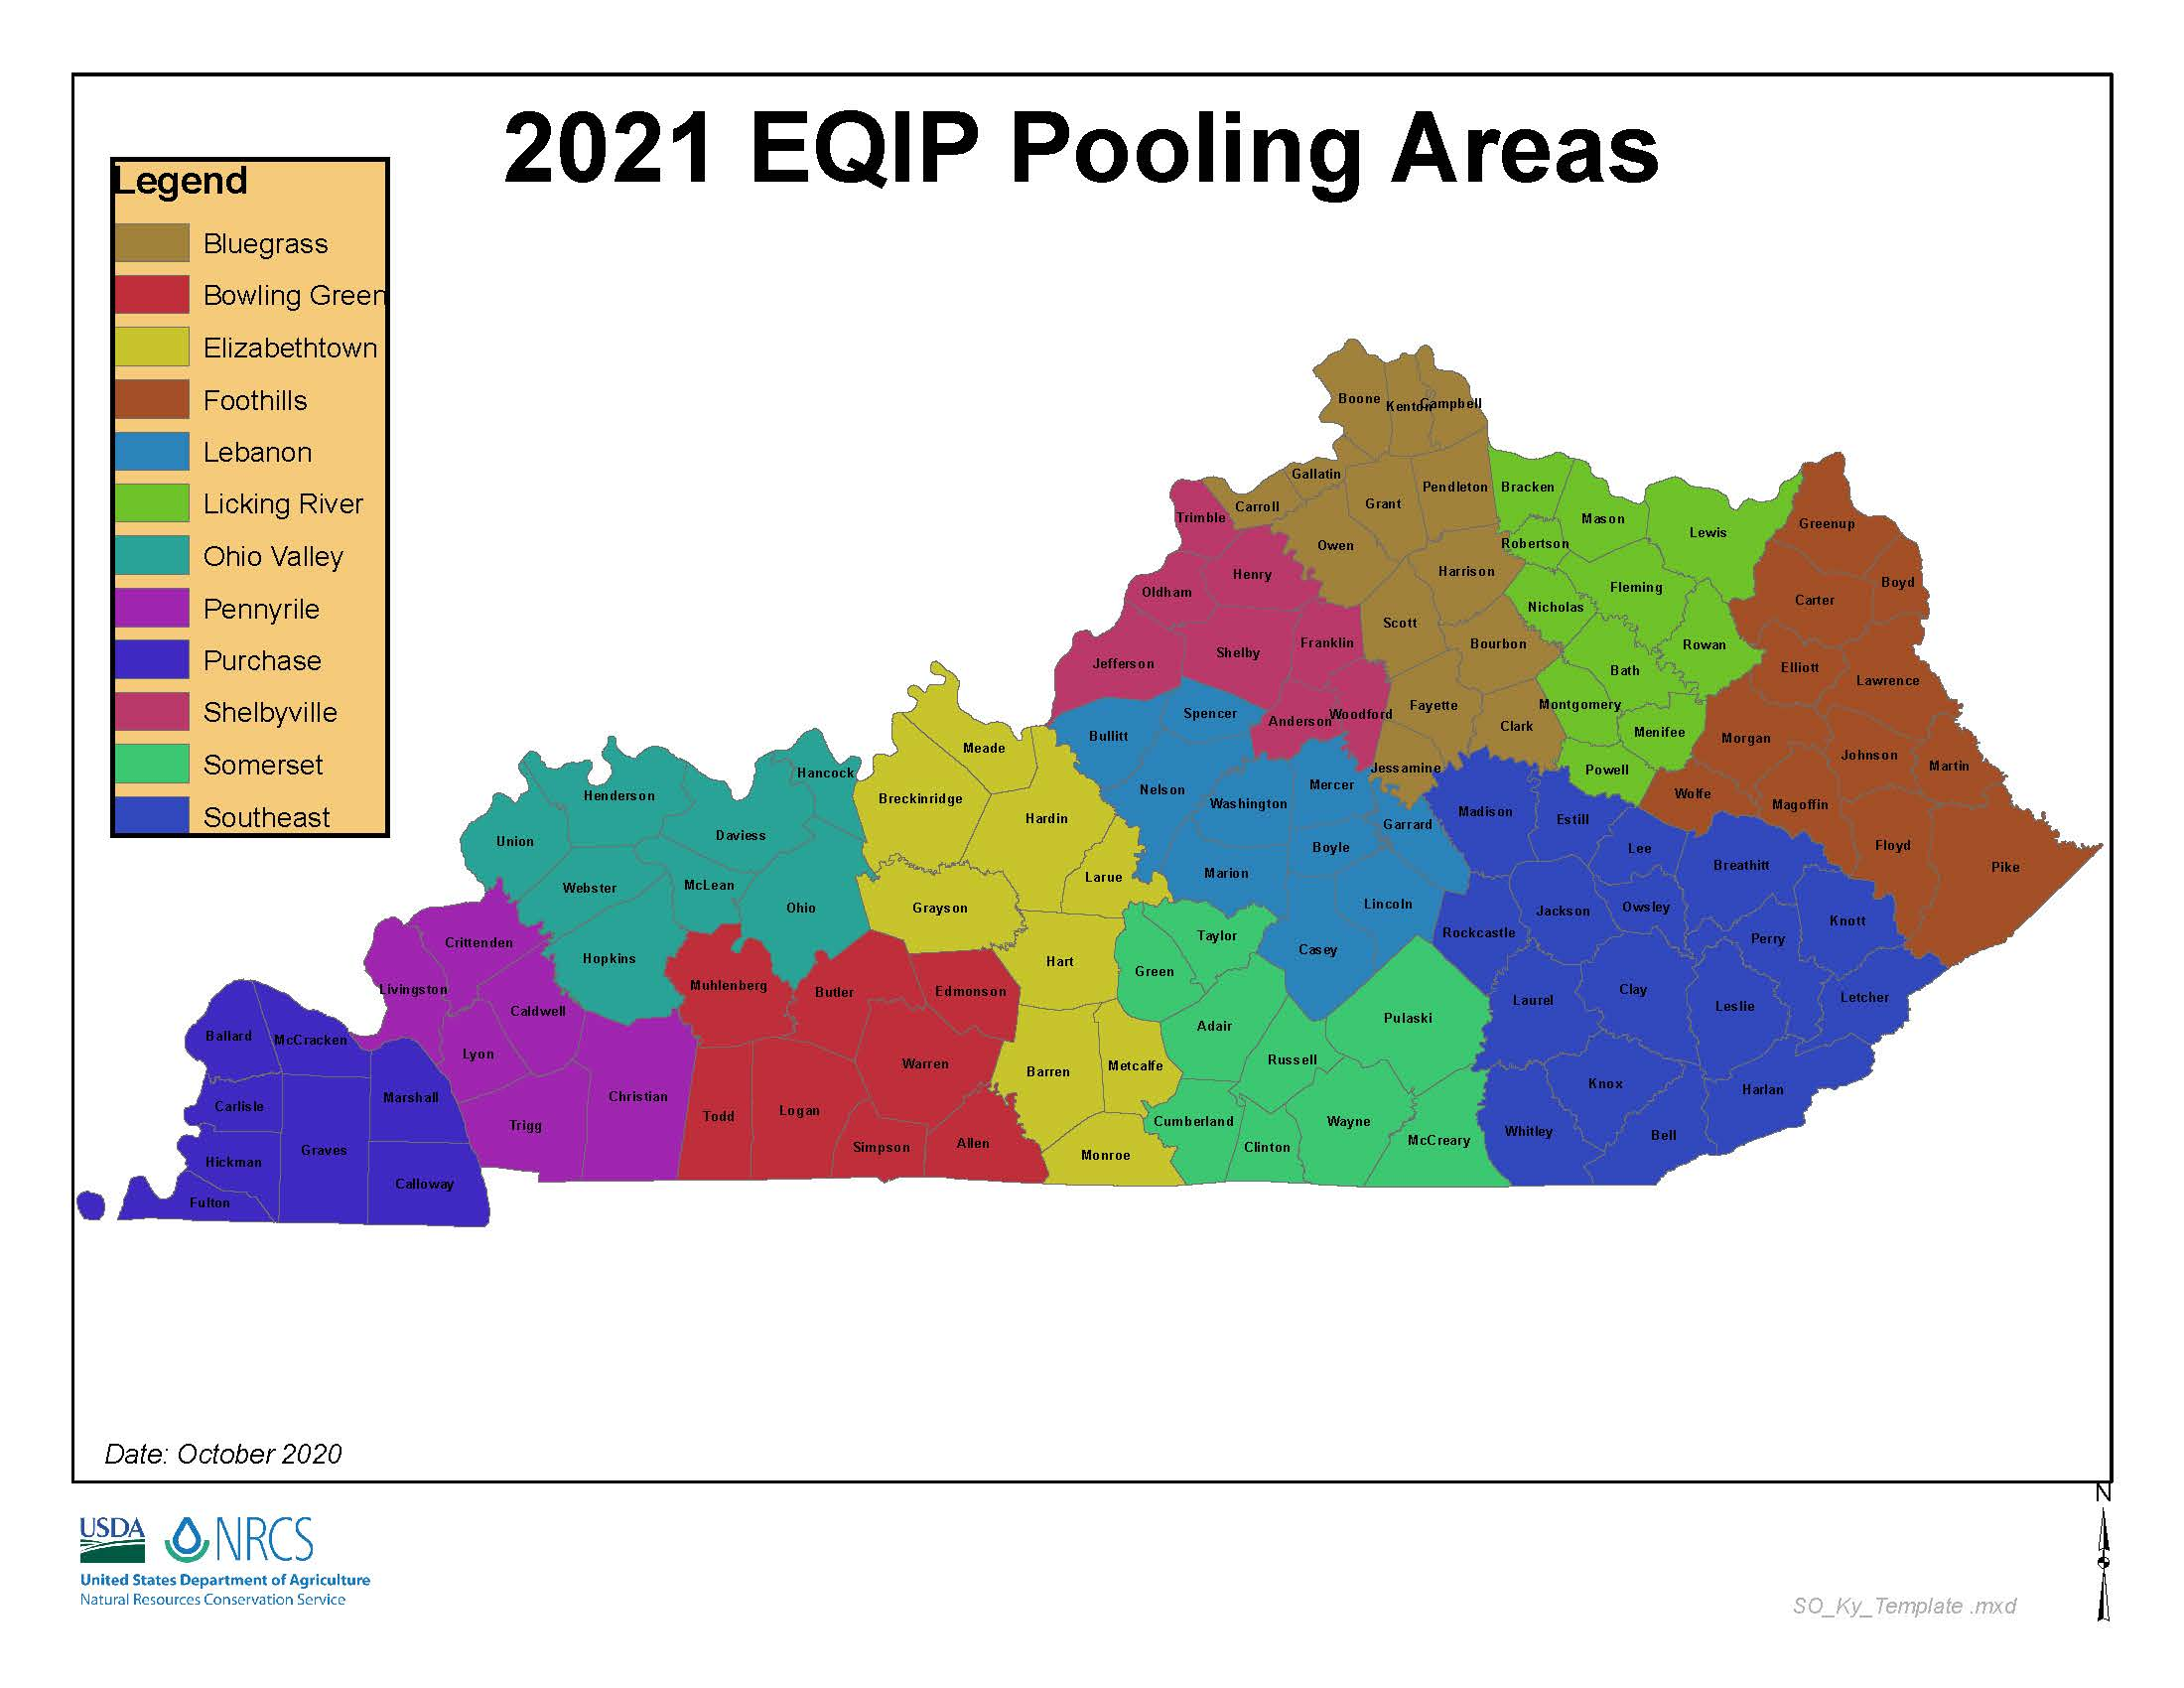 2021 EQIP Pooling Areas Map